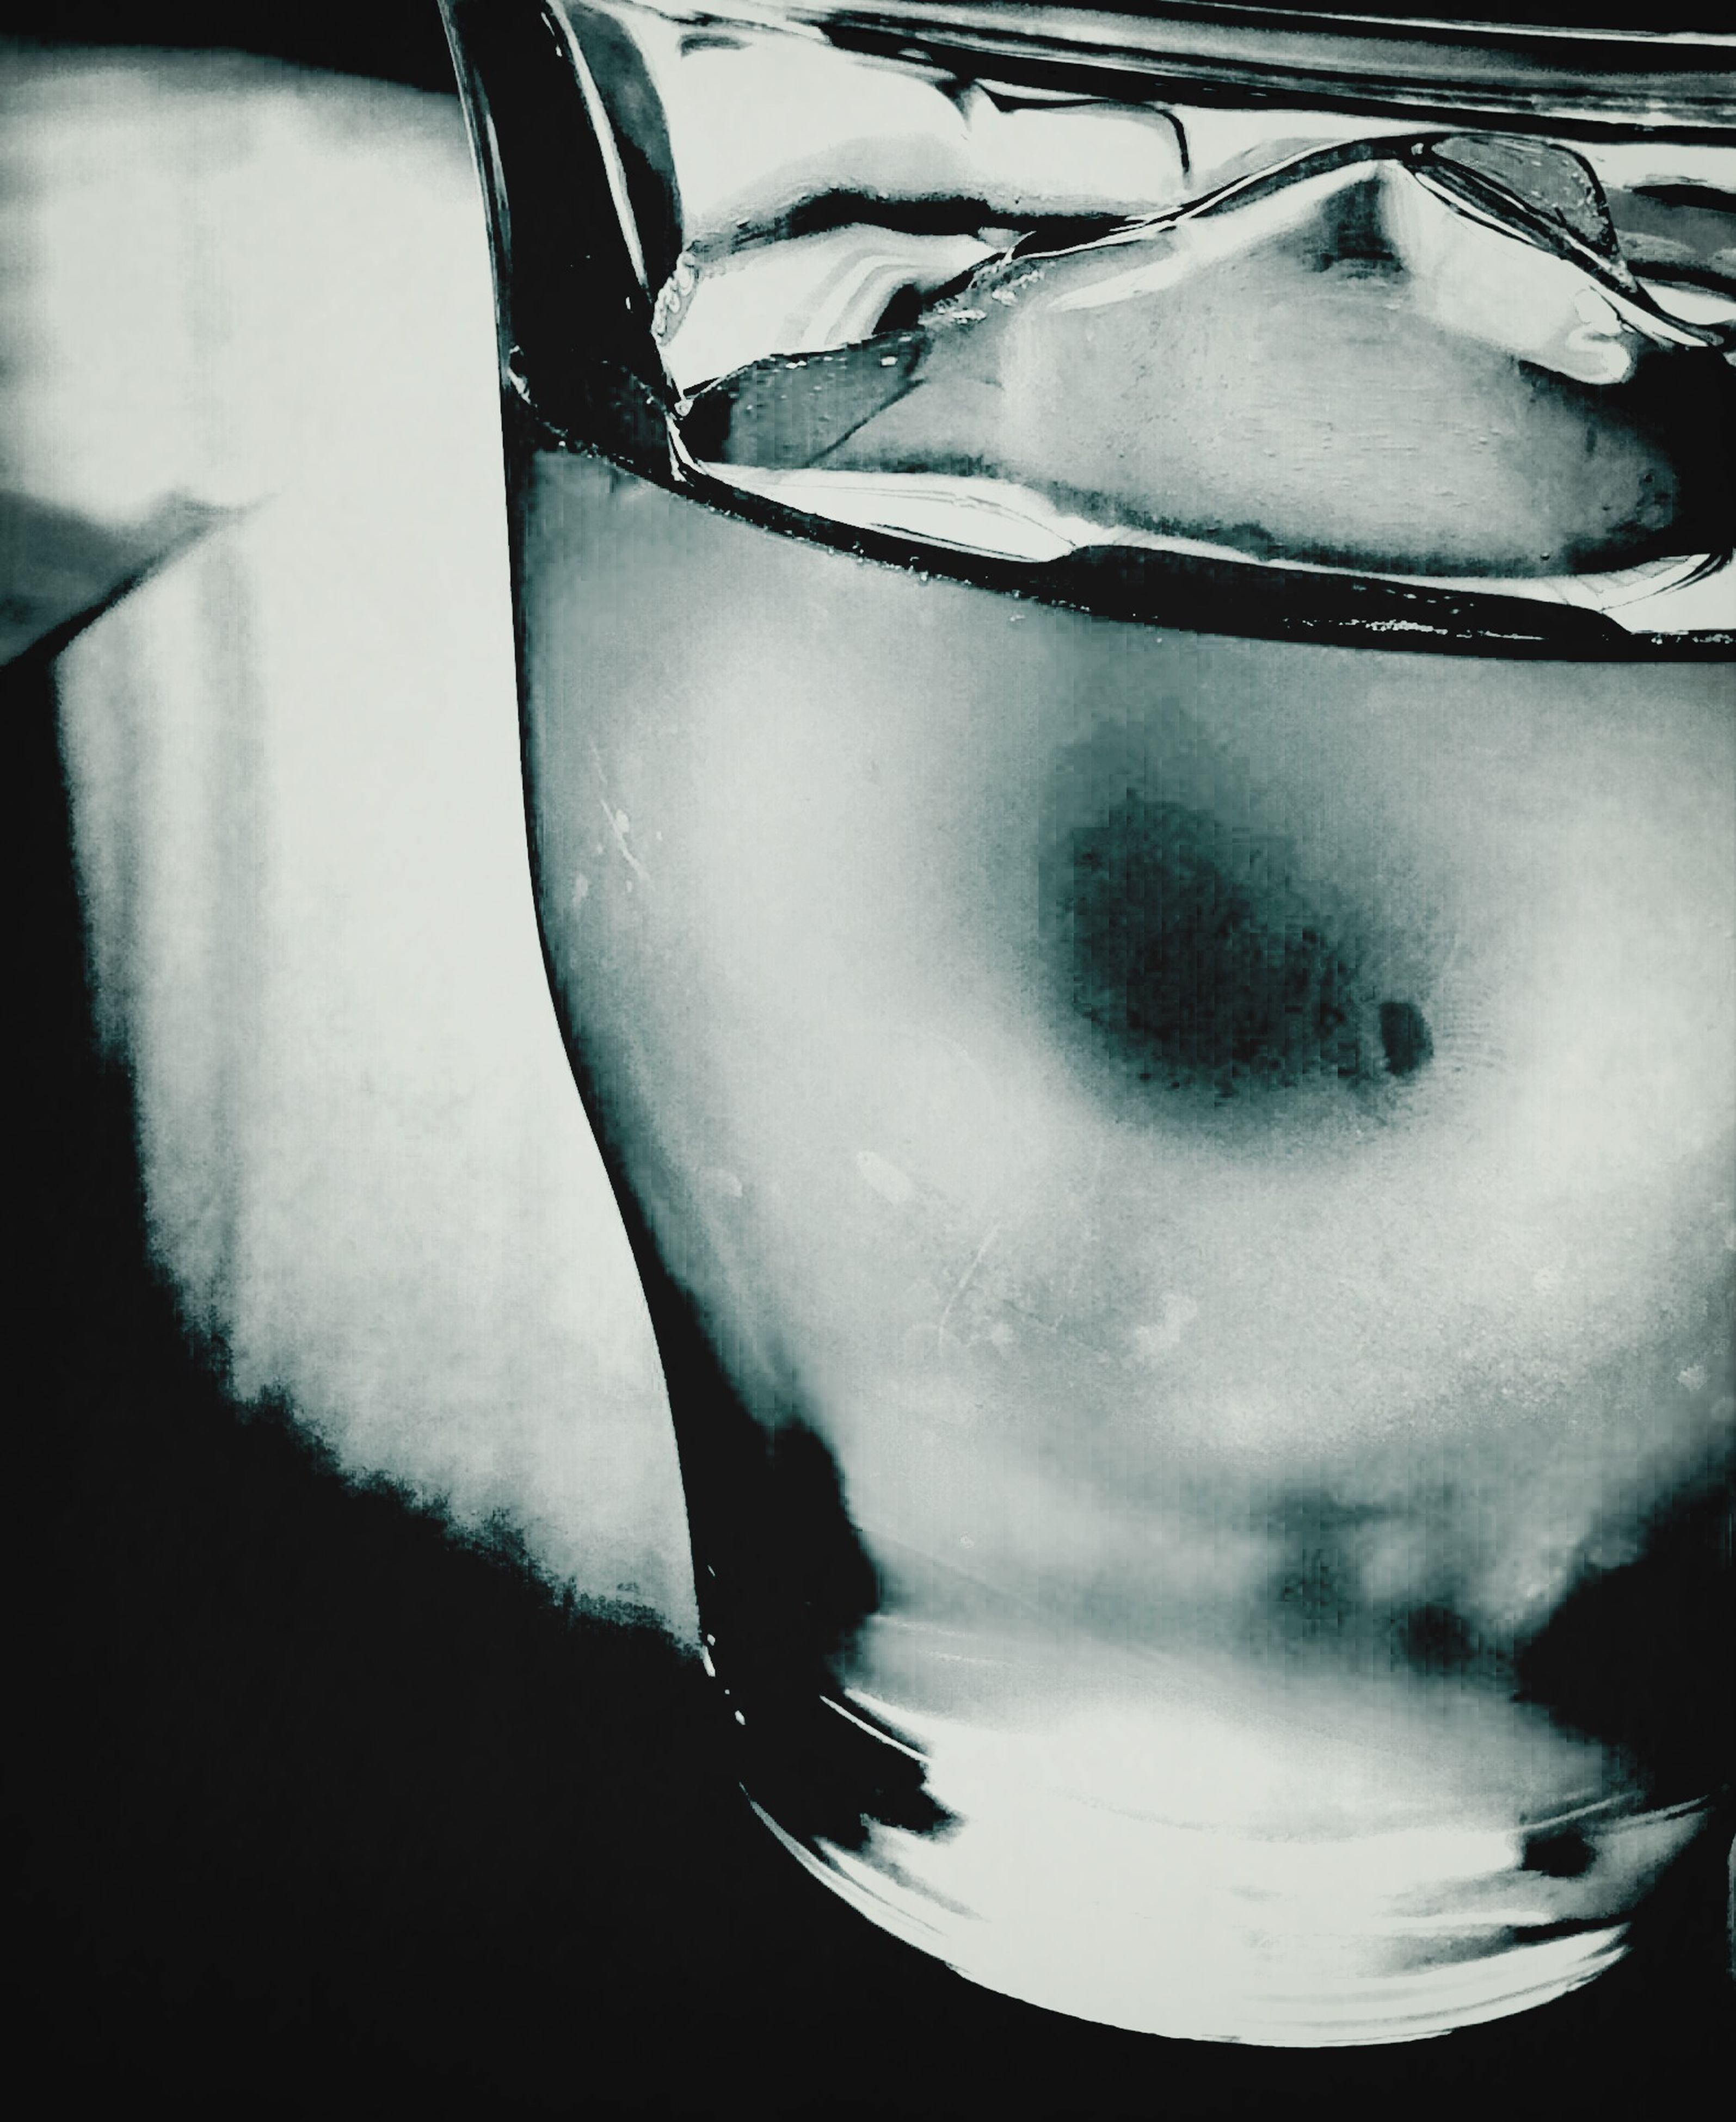 indoors, close-up, reflection, glass - material, still life, transparent, drinking glass, drink, part of, no people, refreshment, single object, high angle view, water, cropped, food and drink, day, table, mode of transport, focus on foreground